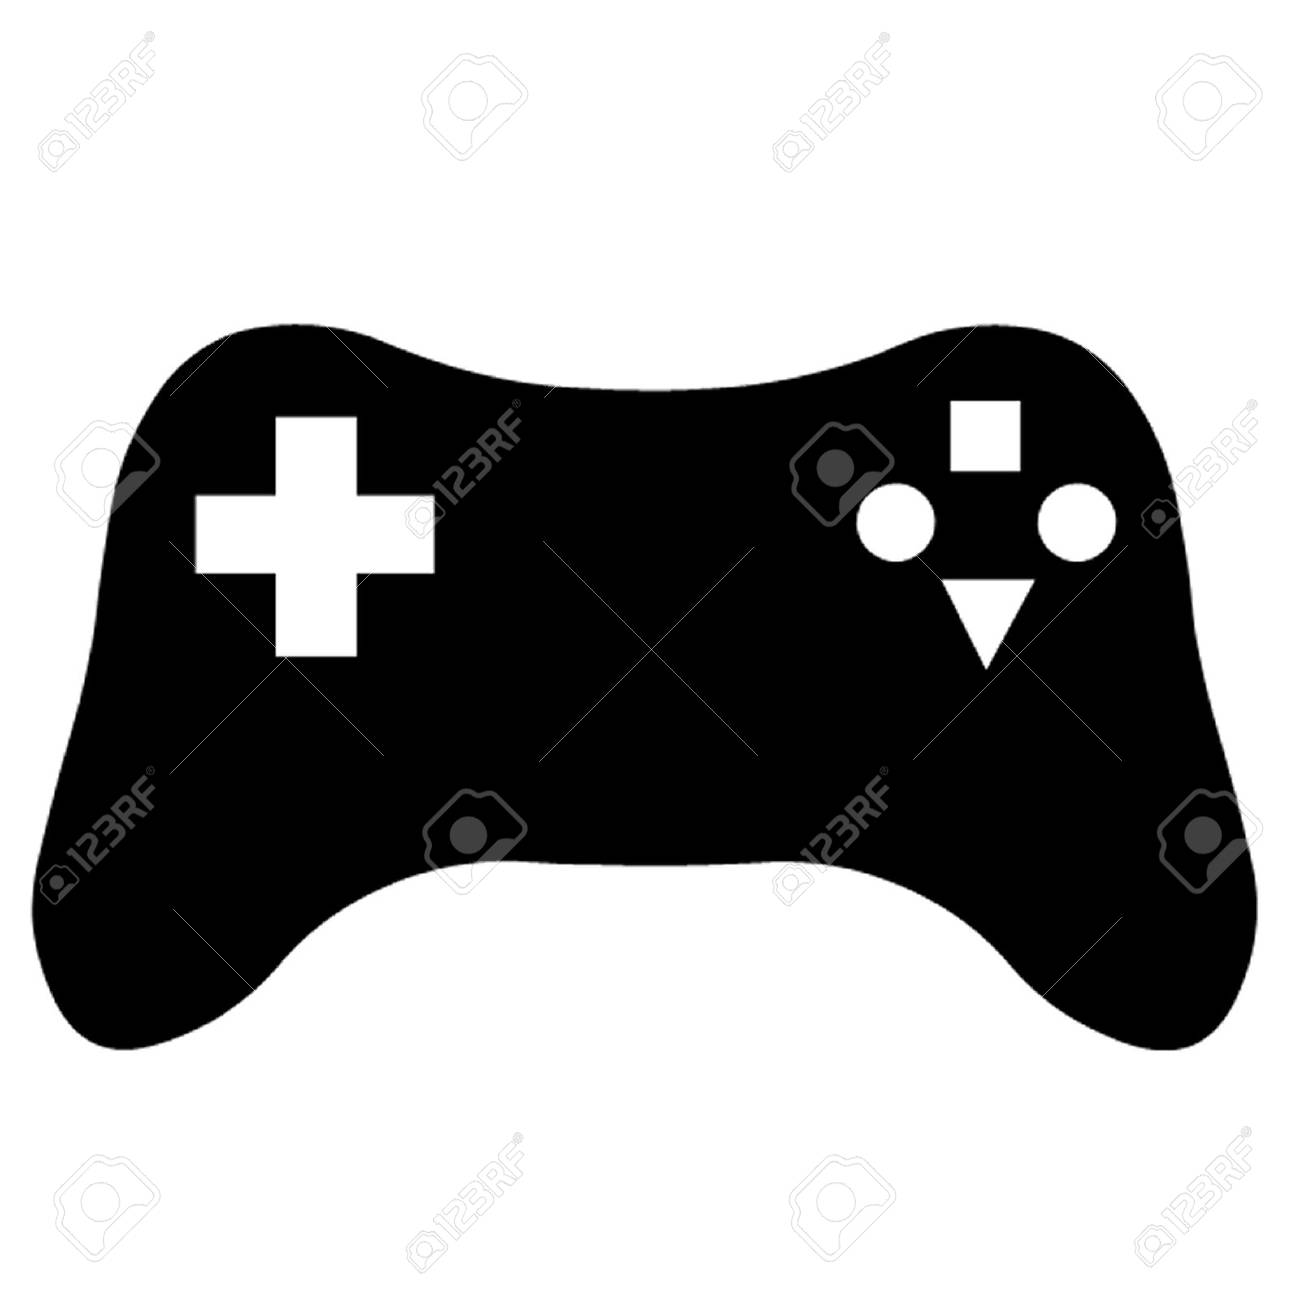 Gaming Console Stock Vector - 16006882